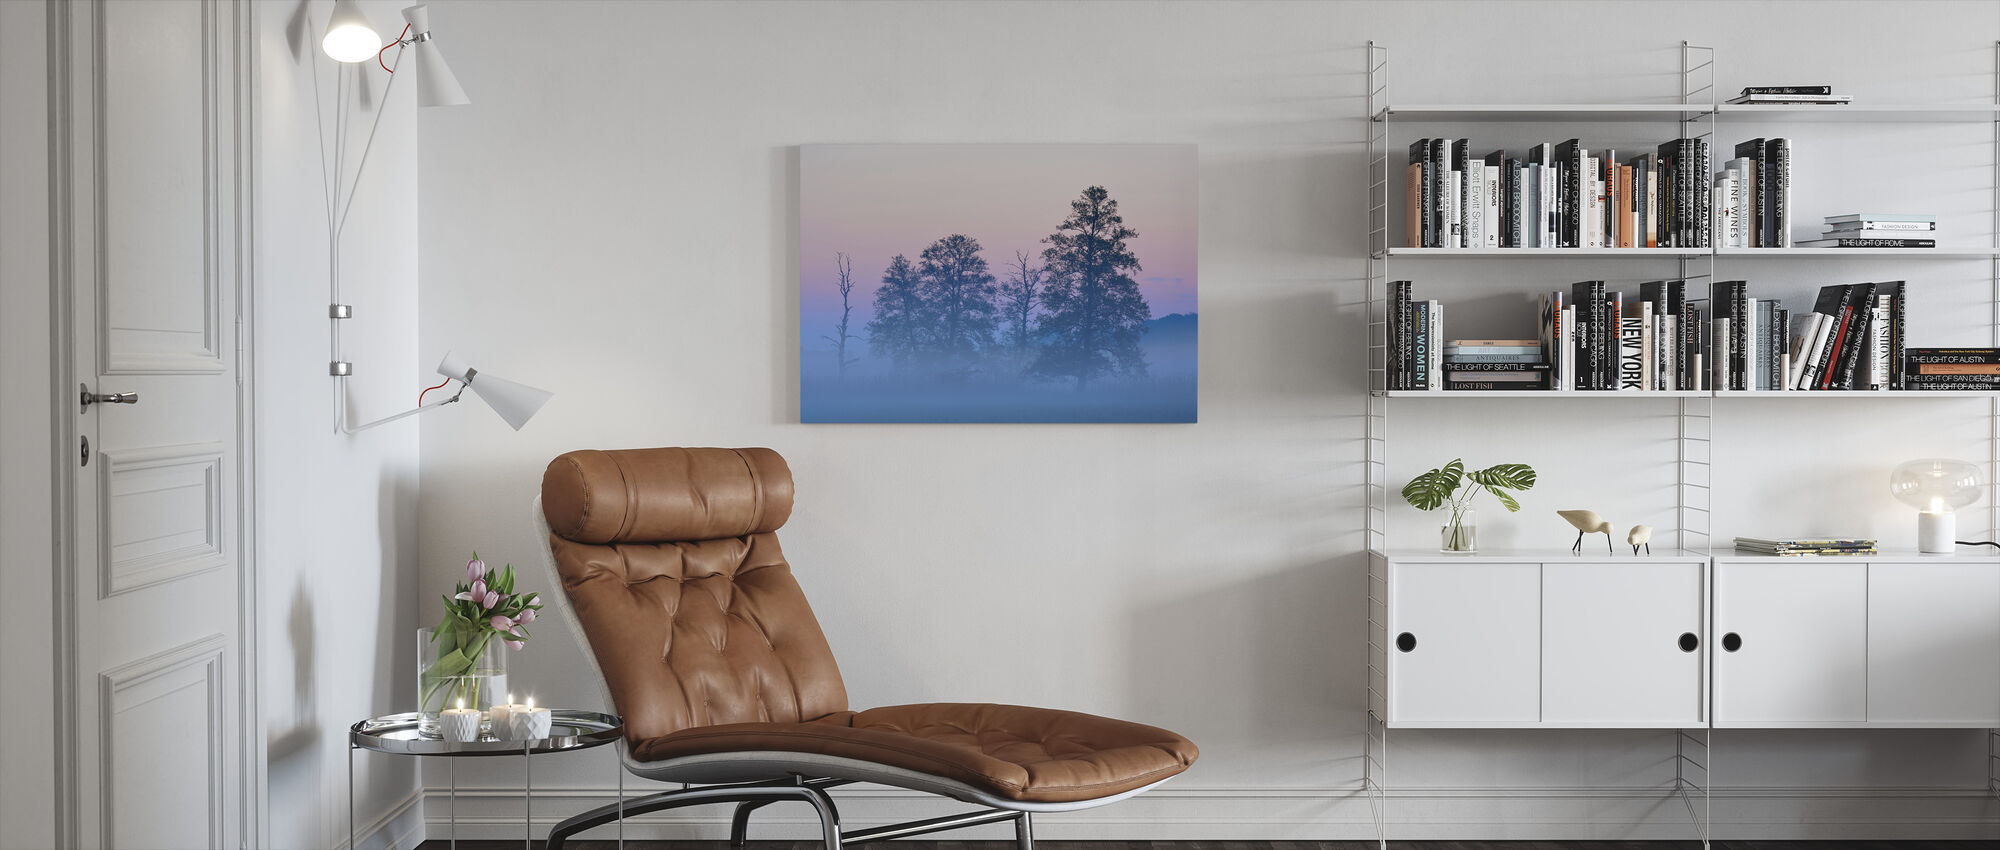 Black Alder in Morning Mist - Canvas print - Living Room